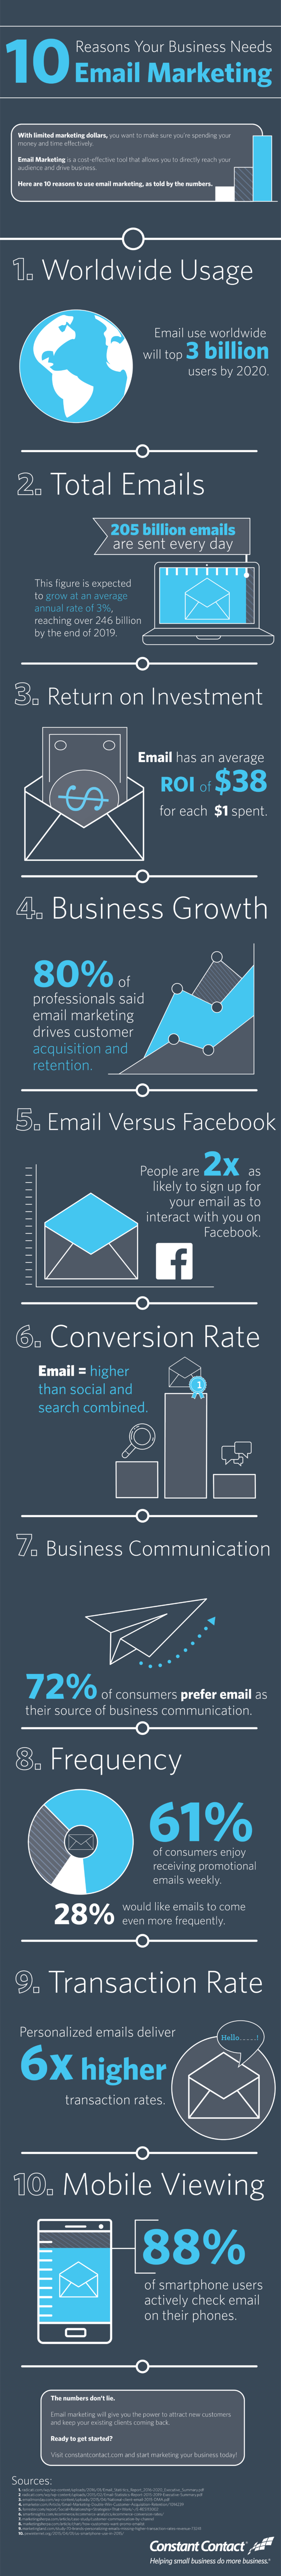 Email Marketing Stats infographic